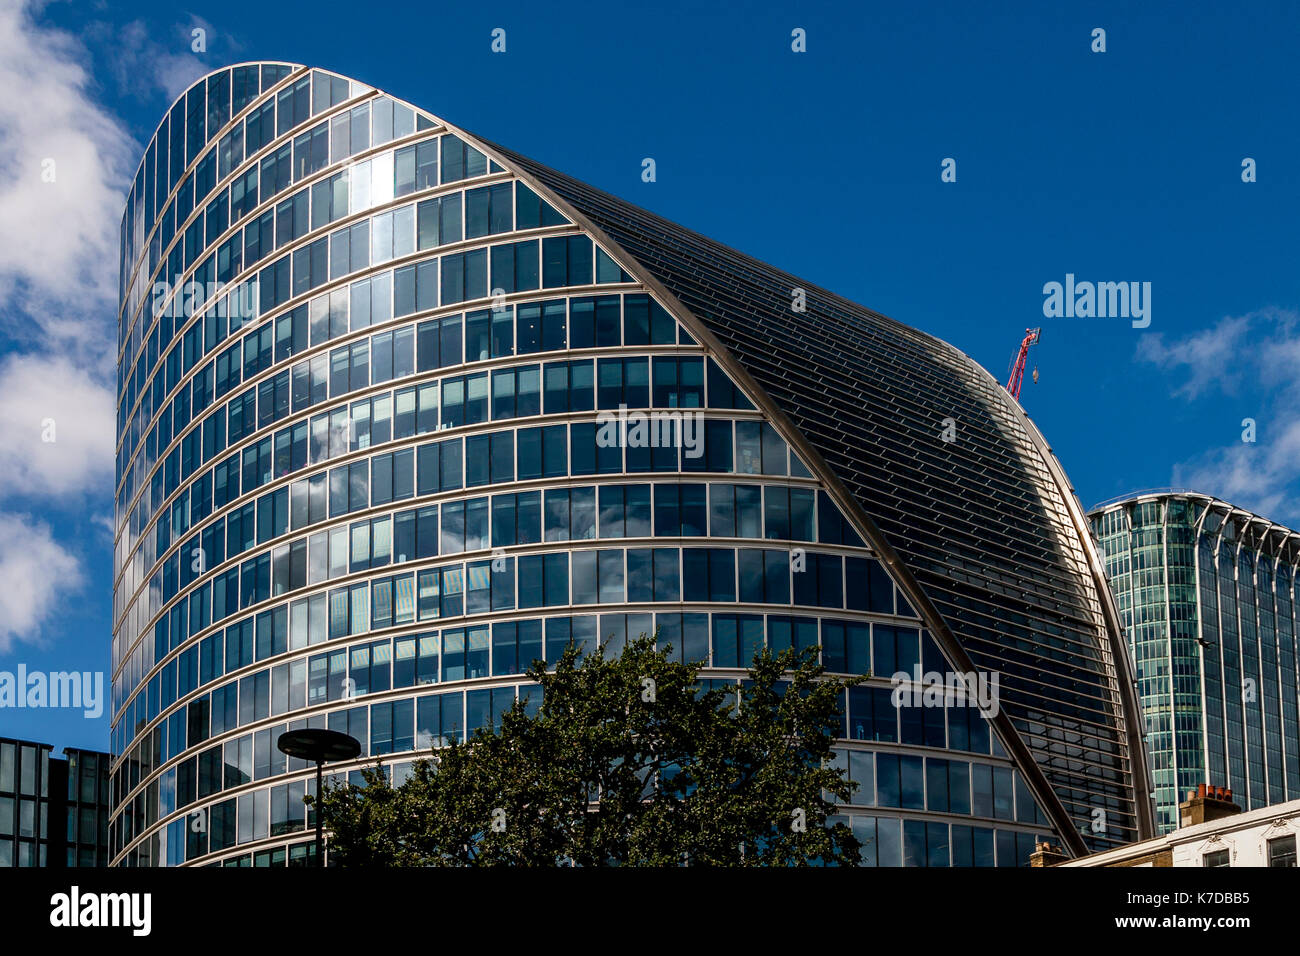 Moor House, Moorgate, The City Of London, London, UK - Stock Image